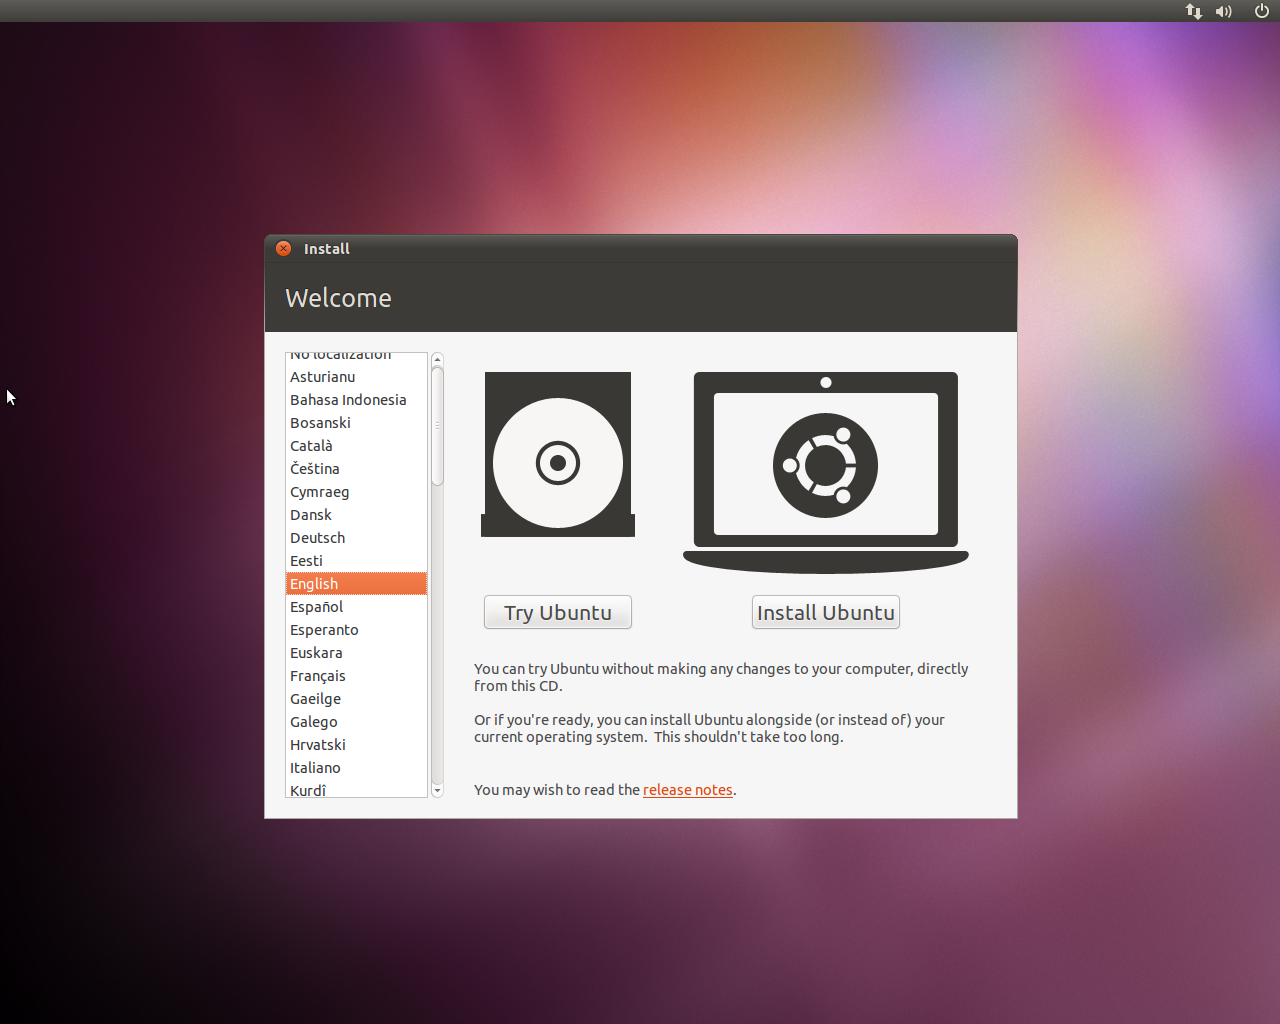 ubuntu 10.10 in italiano